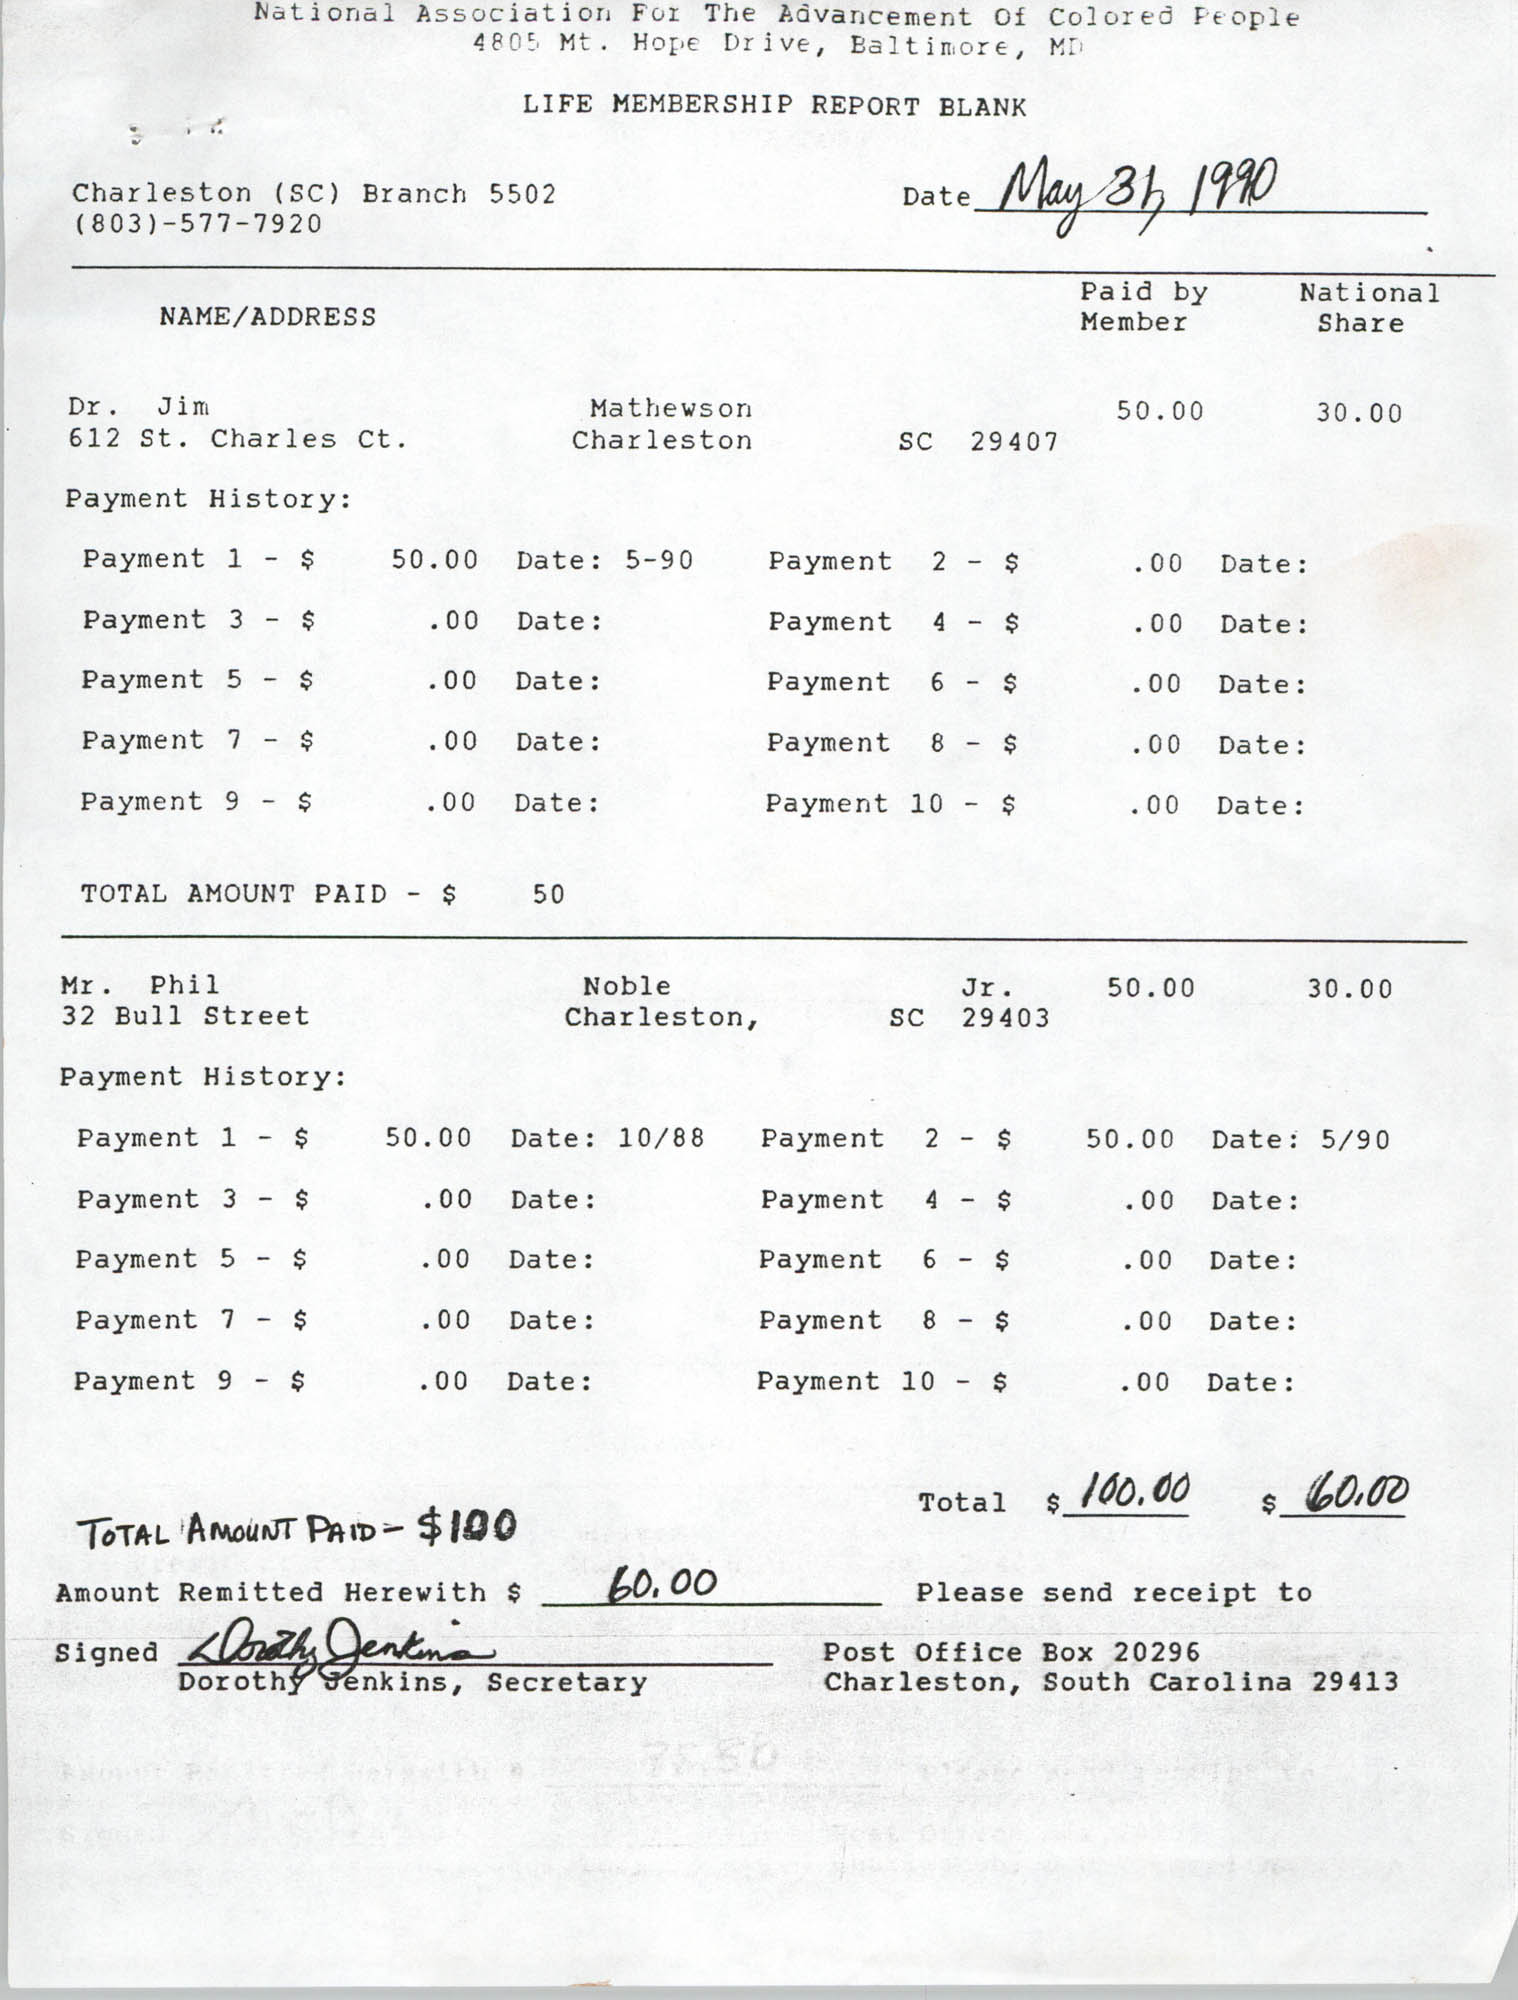 Life Membership Report Blank, Charleston Branch of the NAACP, Dorothy Jenkins, May 31, 1990